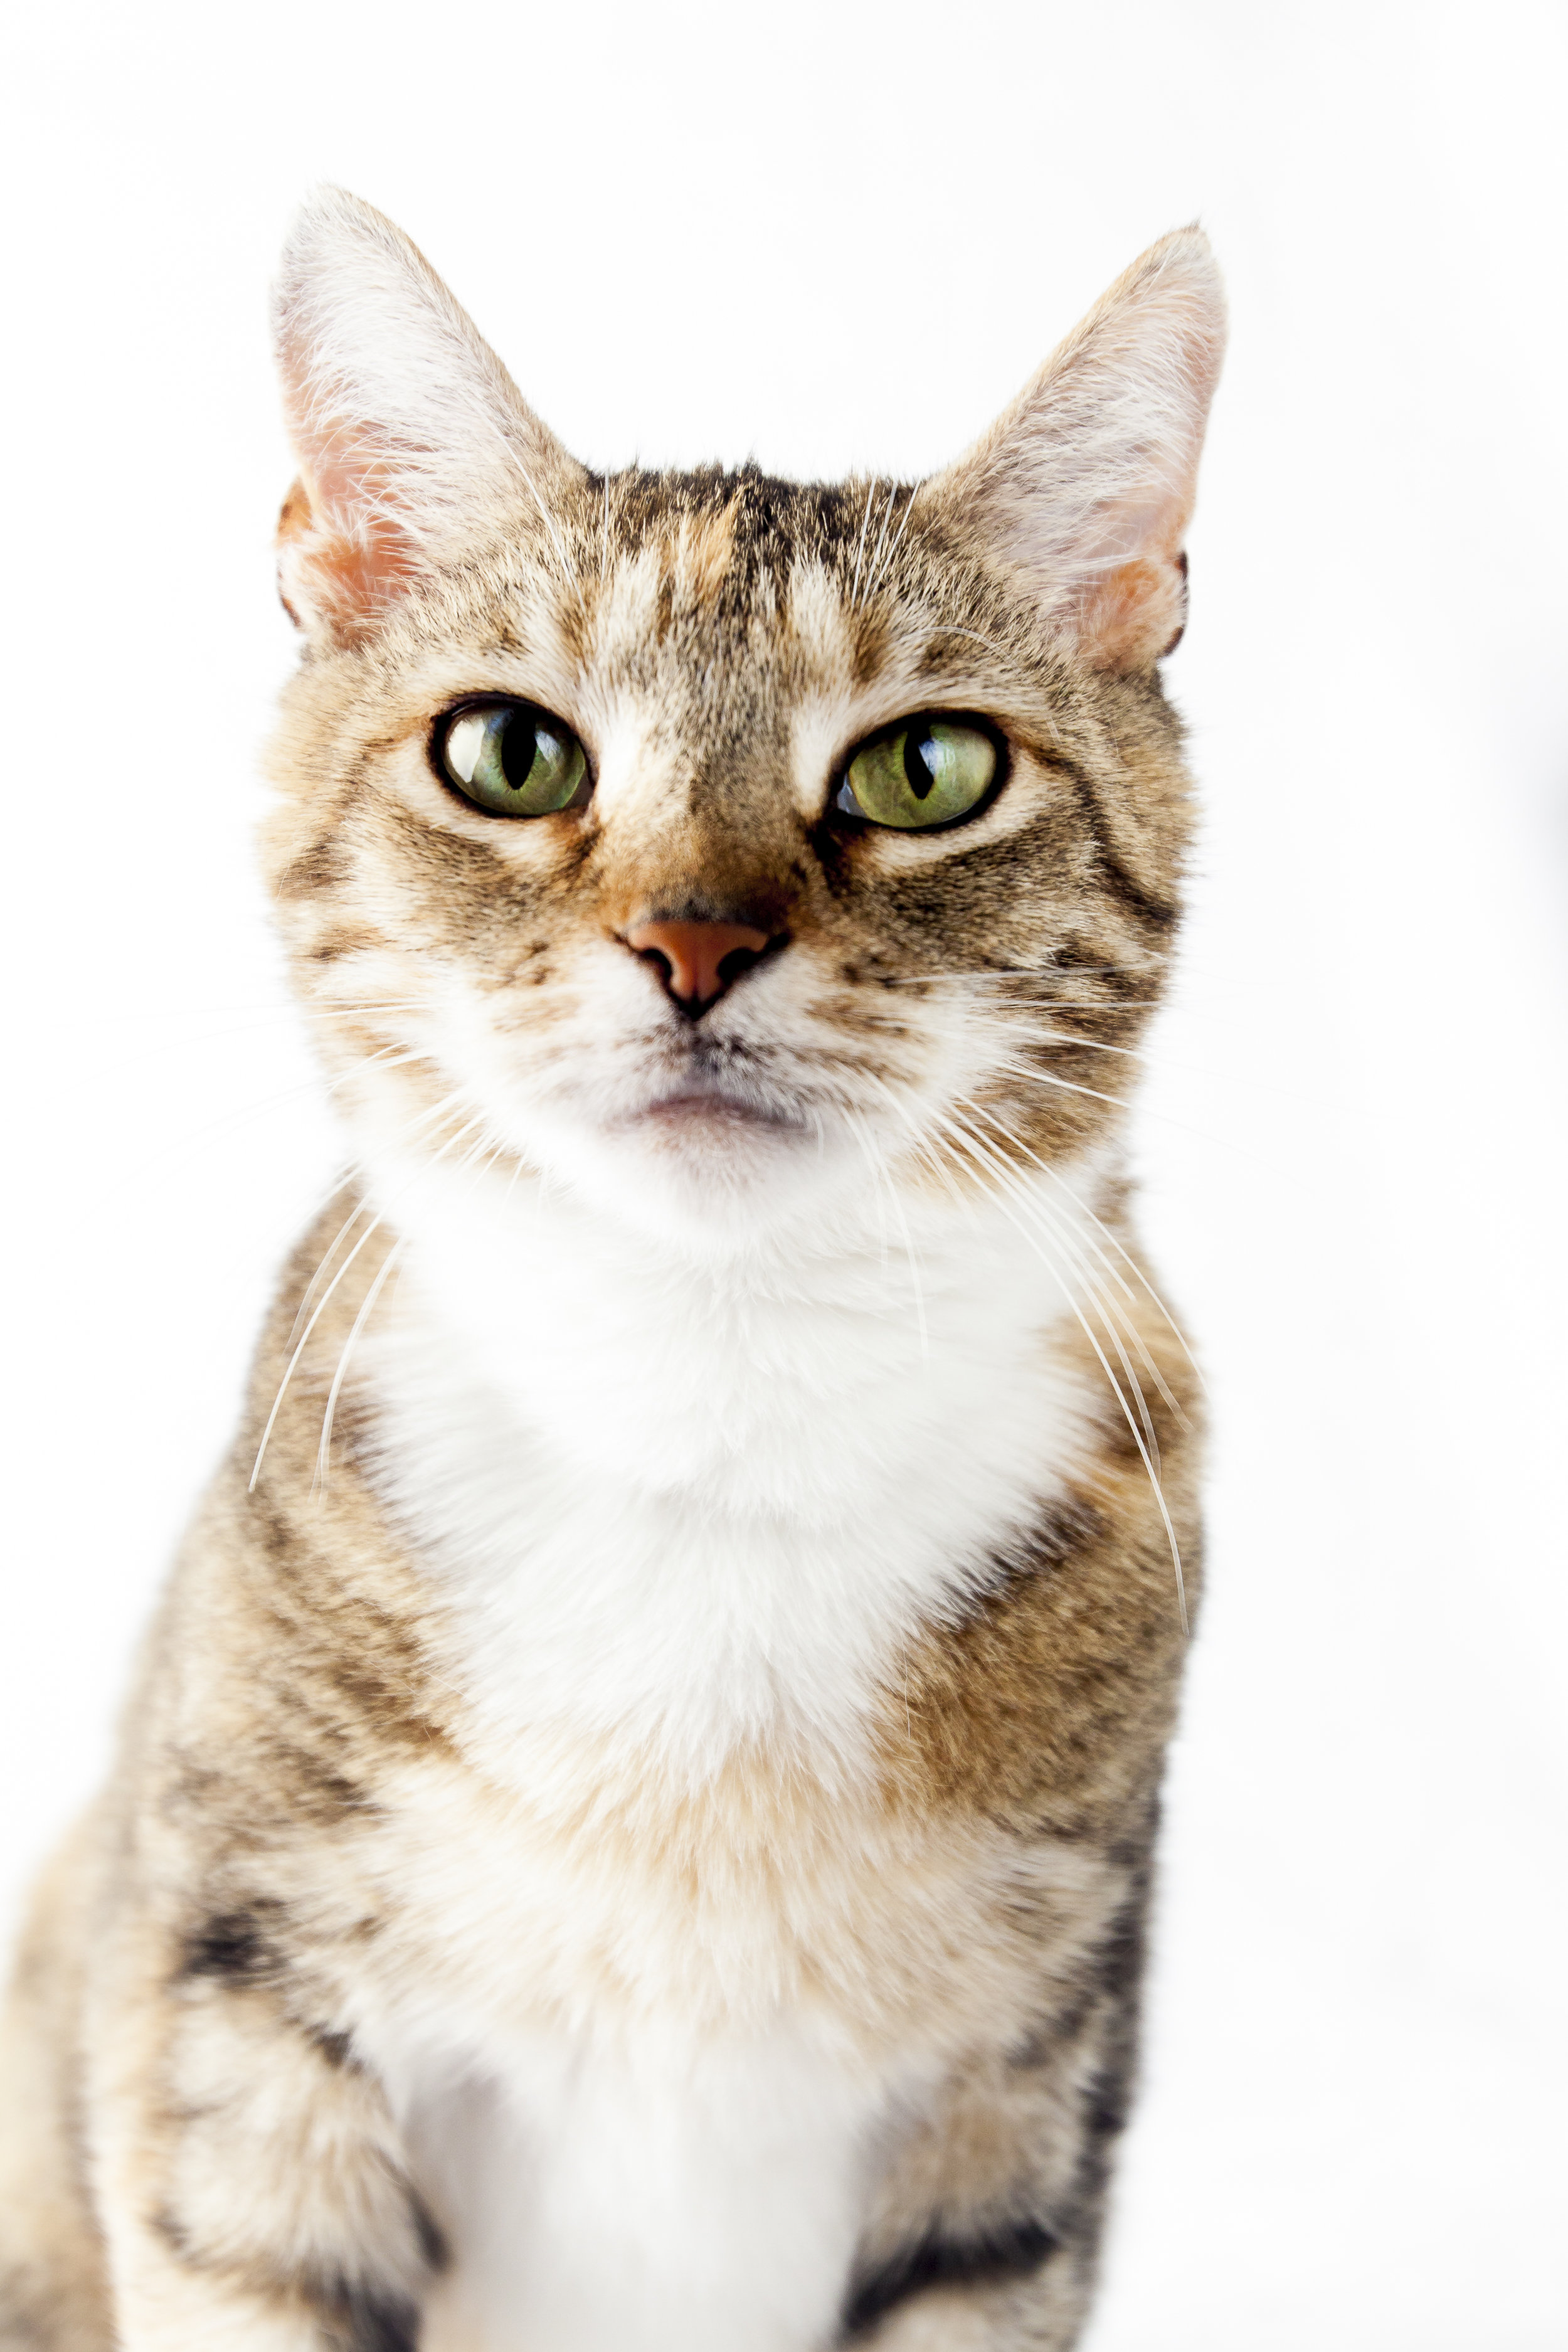 27 calico cat pet photography studio session on white.jpg